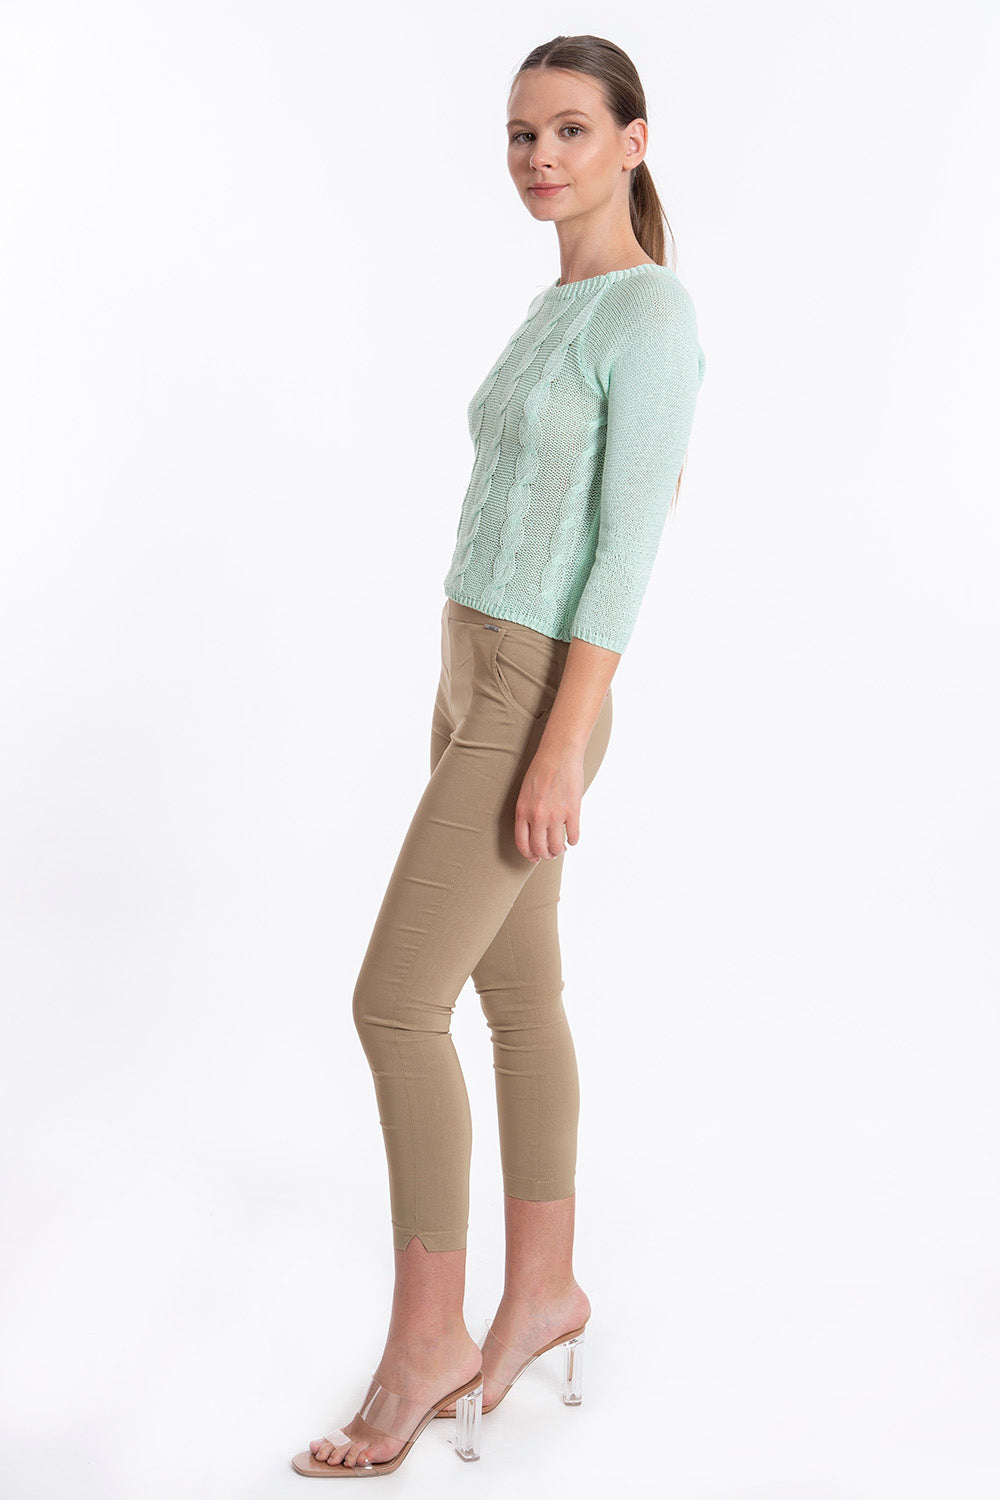 Akè skinny stretcy cotton beige trousers